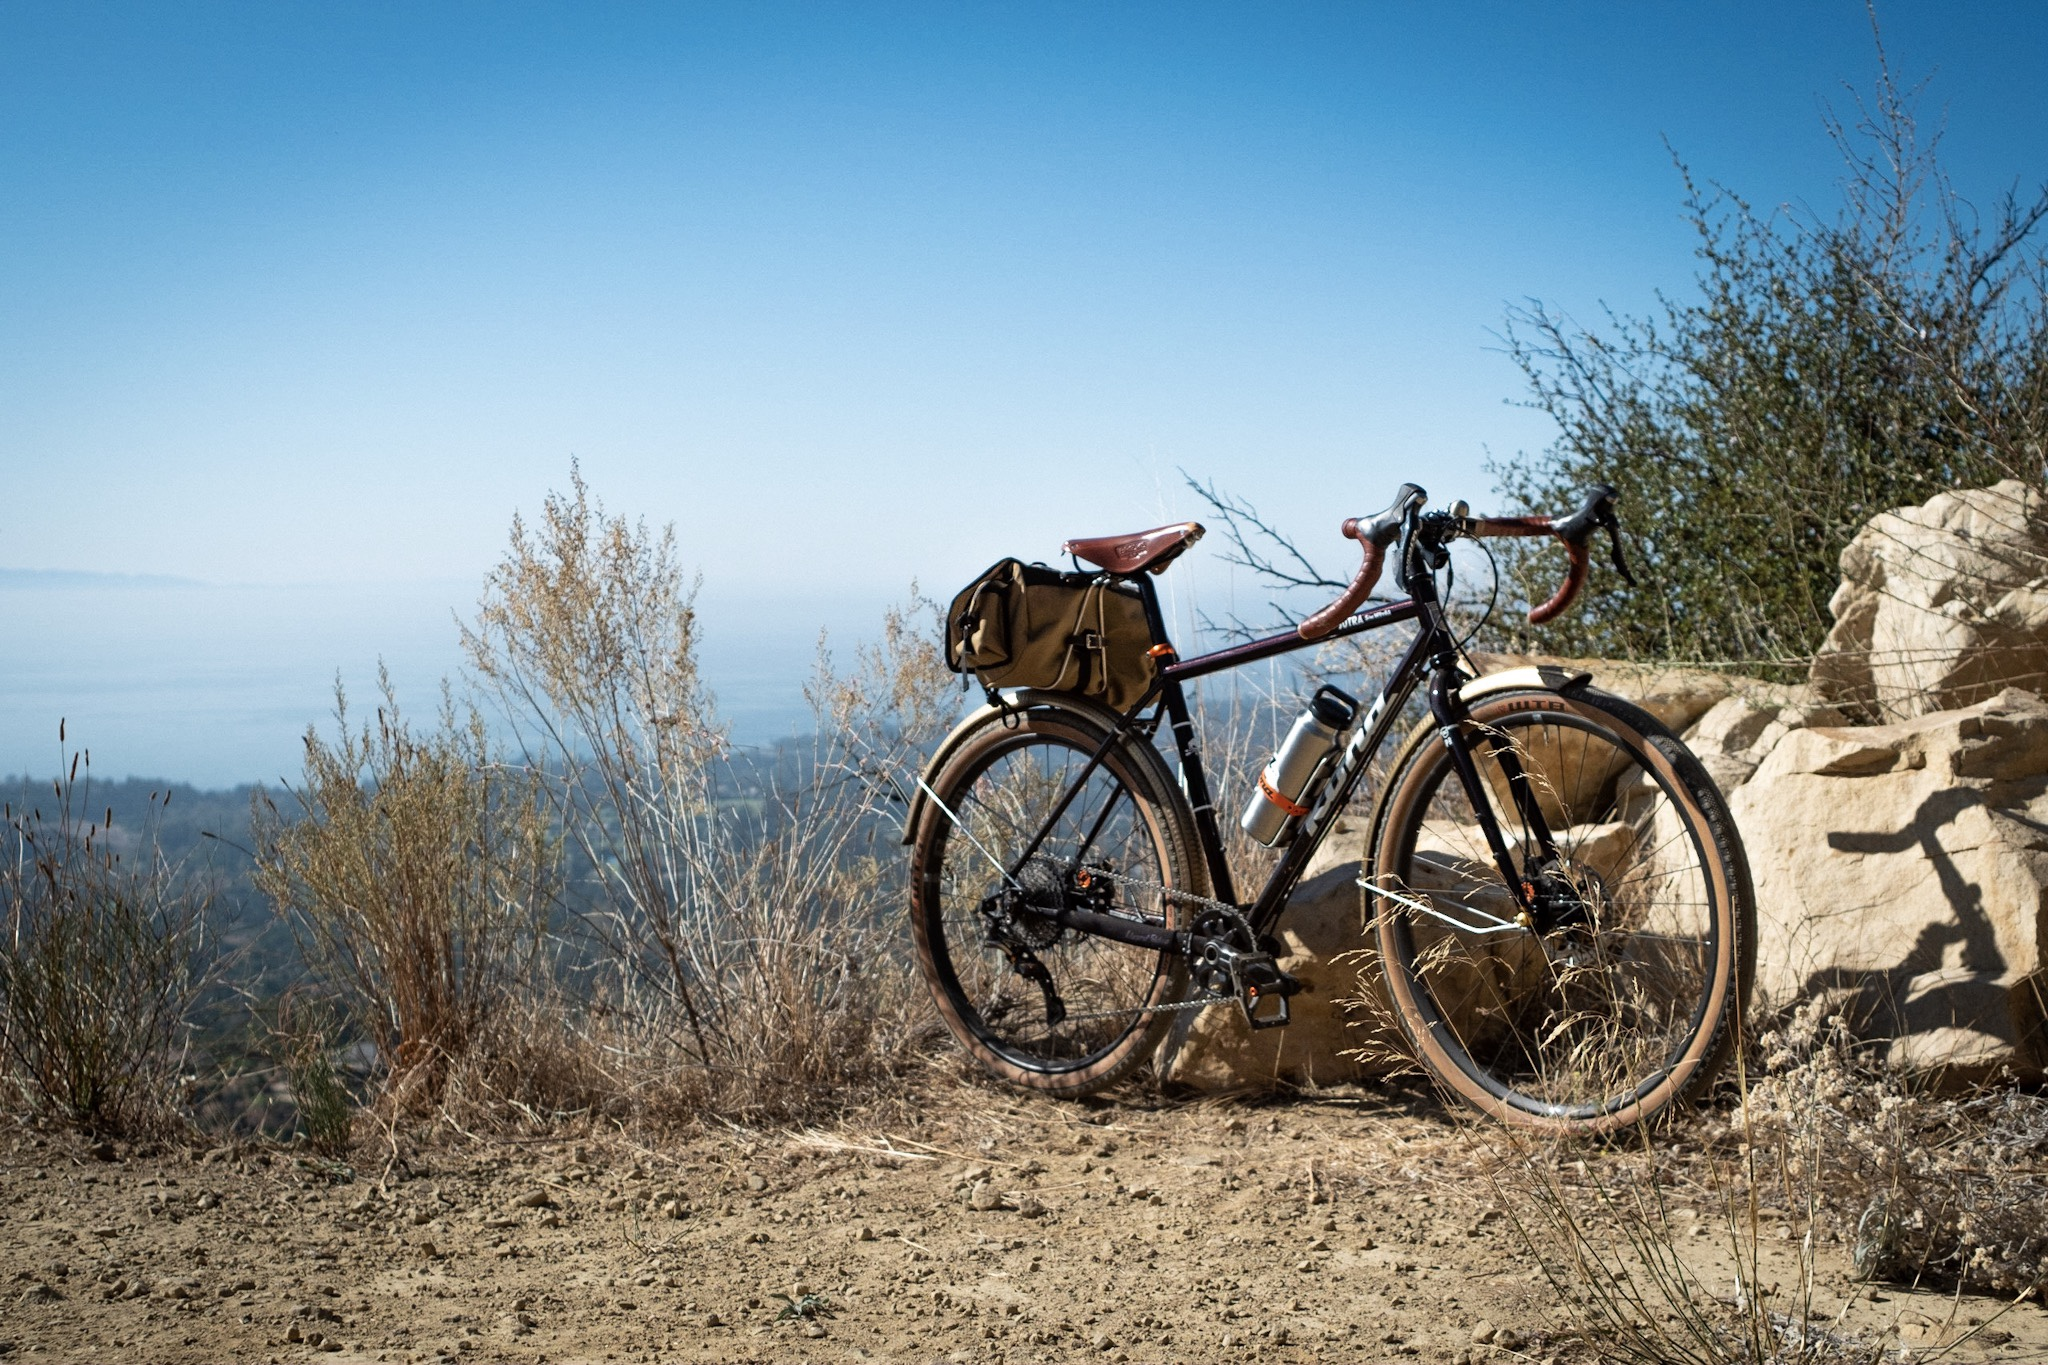 Kona Sutra 650b view from Romero Canyon Trail, Santa Barbara, CA.